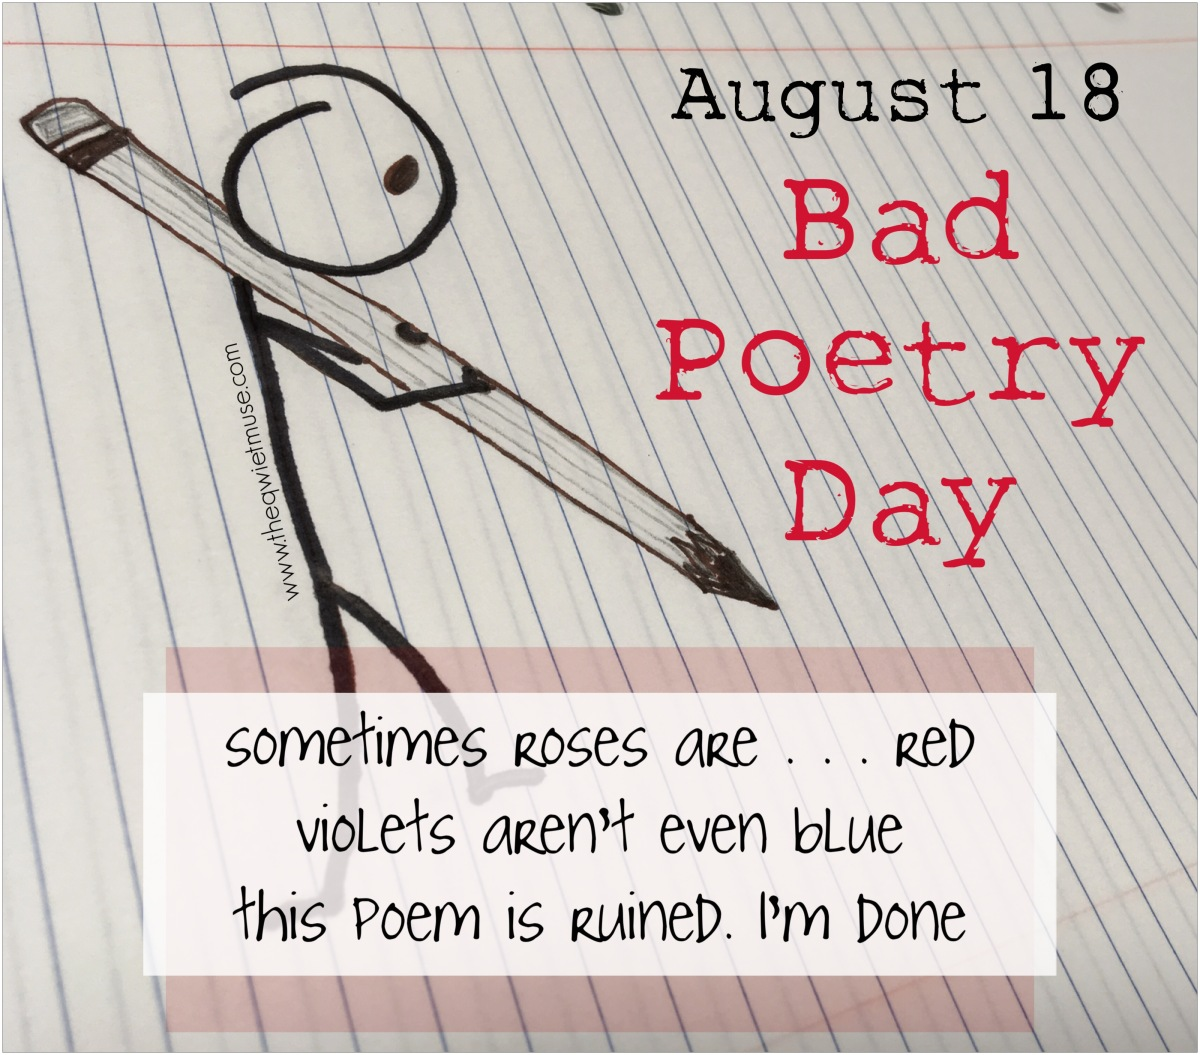 Some poetic advice for Bad Poetry Day